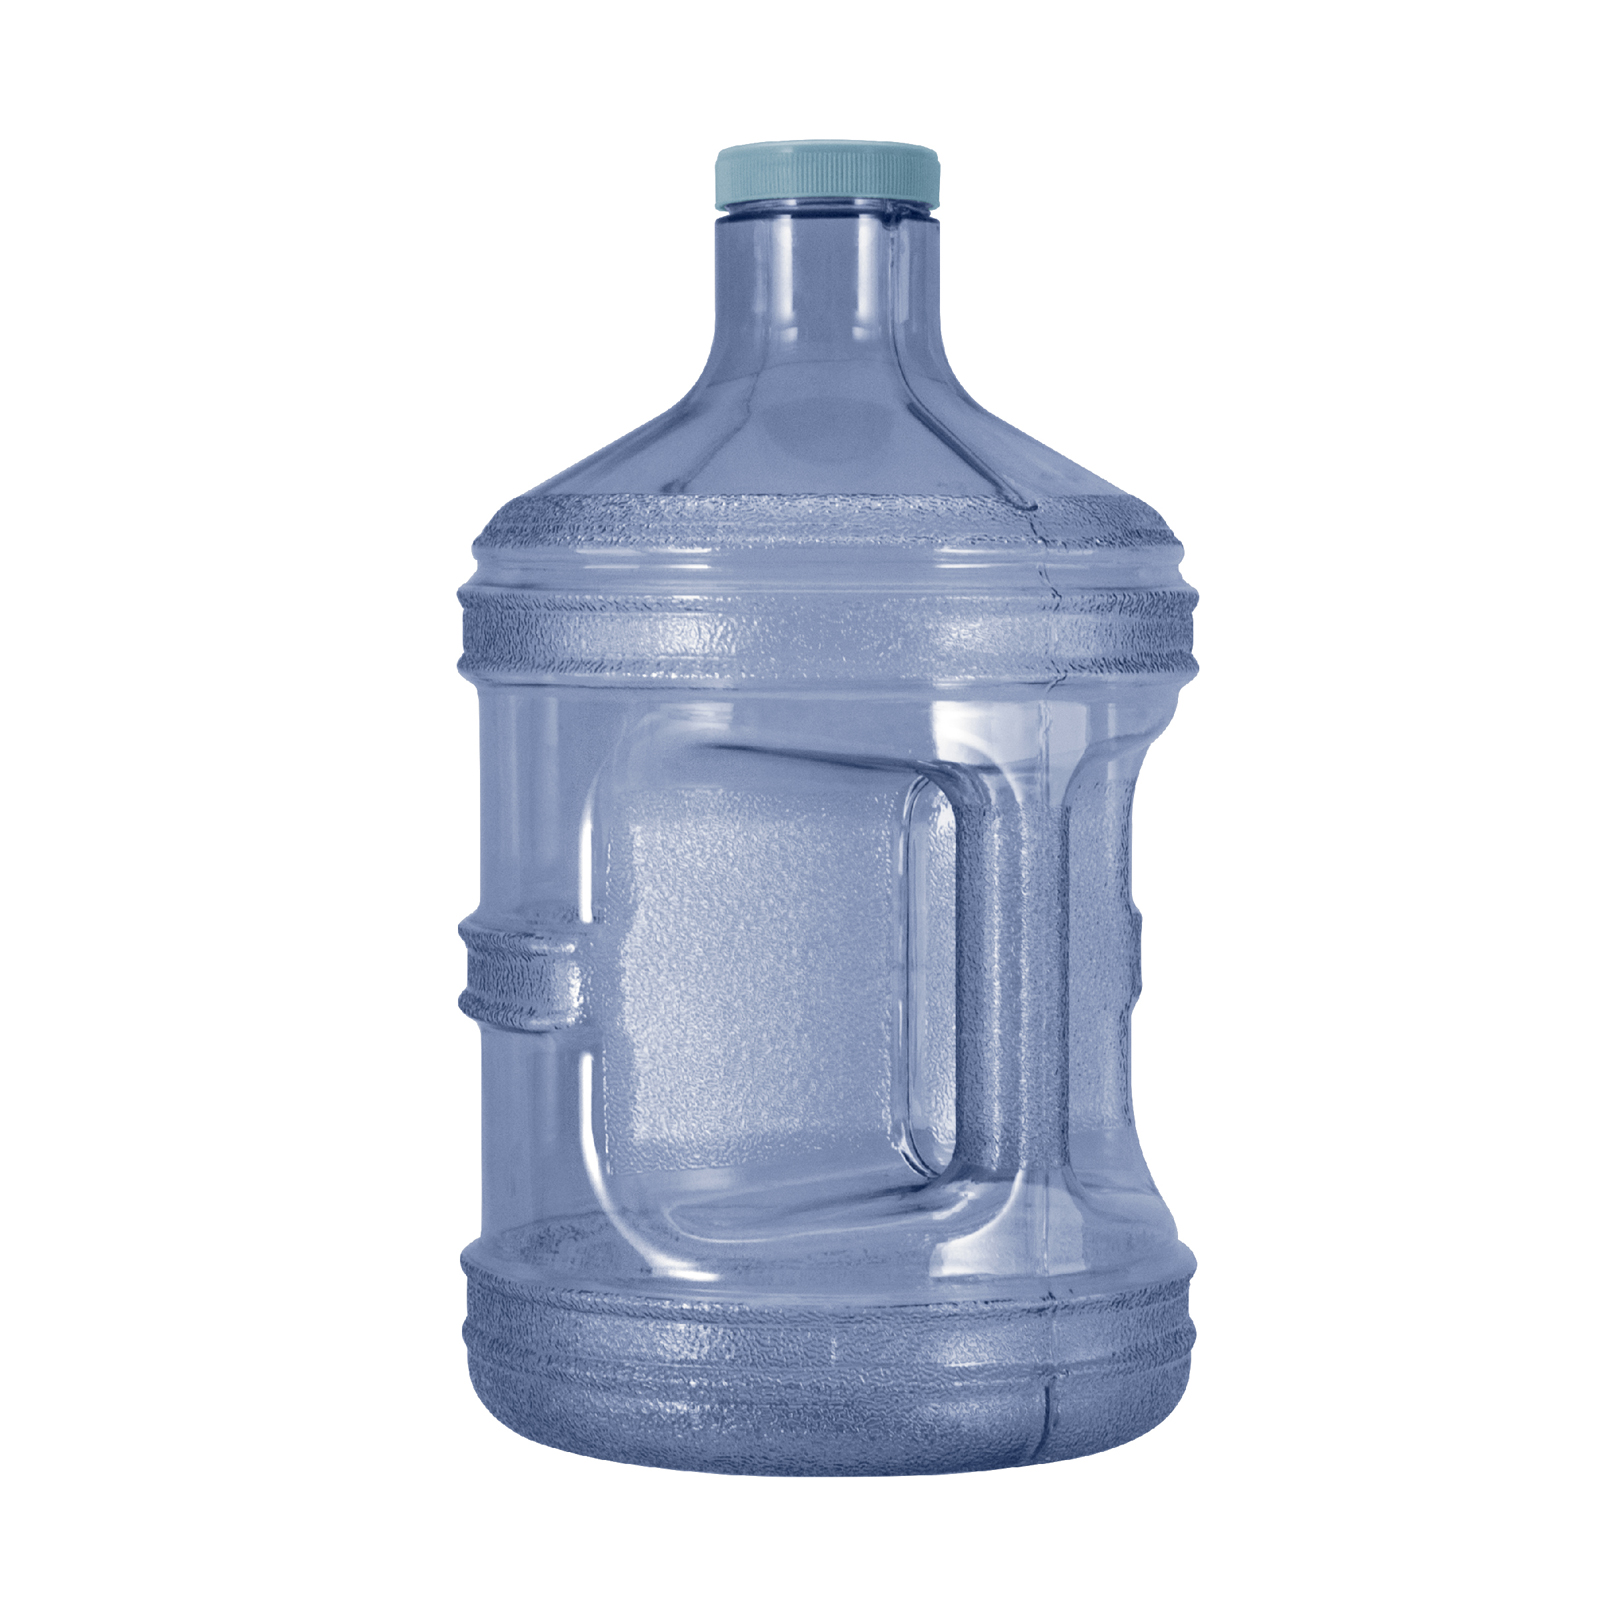 1 Gallon BPA FREE Reusable Plastic Water Bottle Jug Container